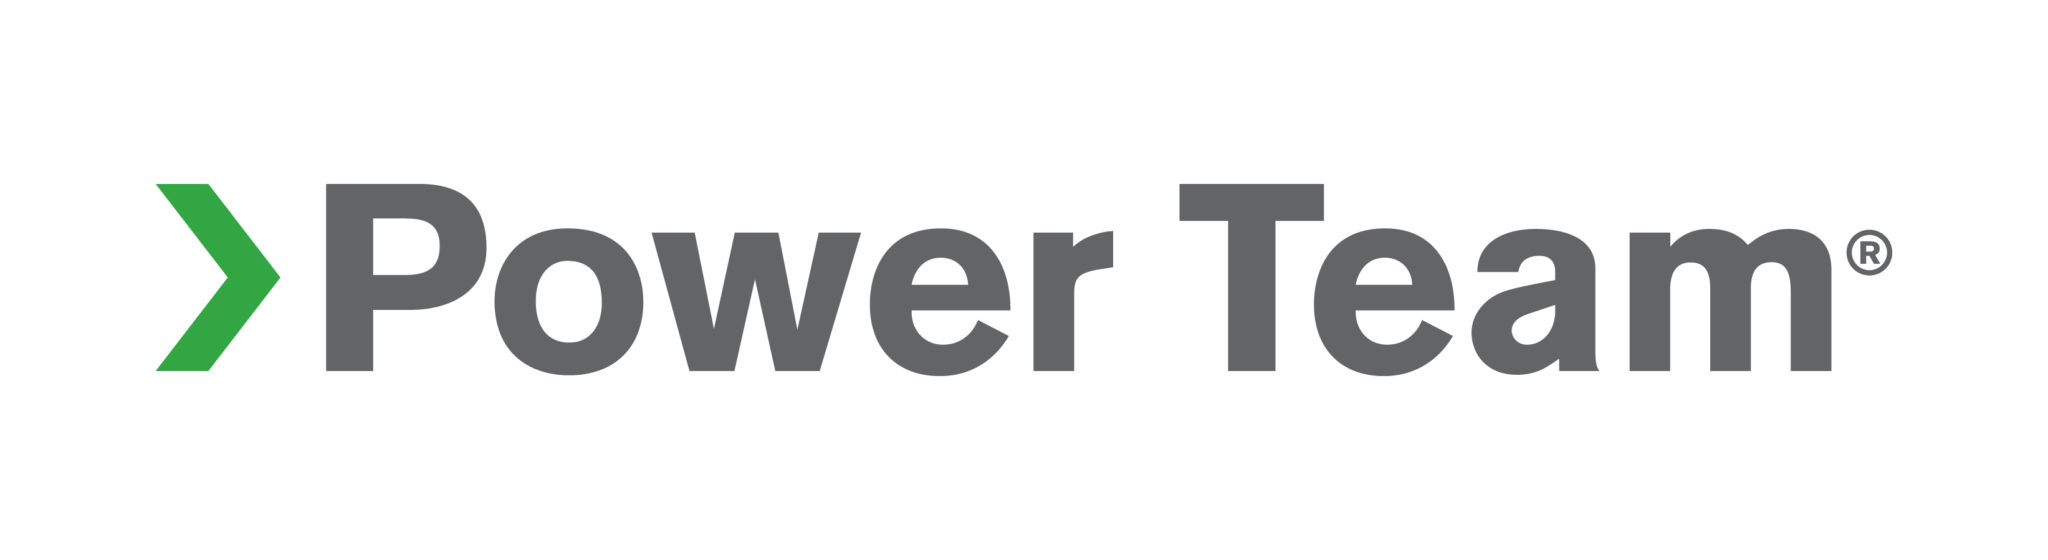 SPX Power Team logo